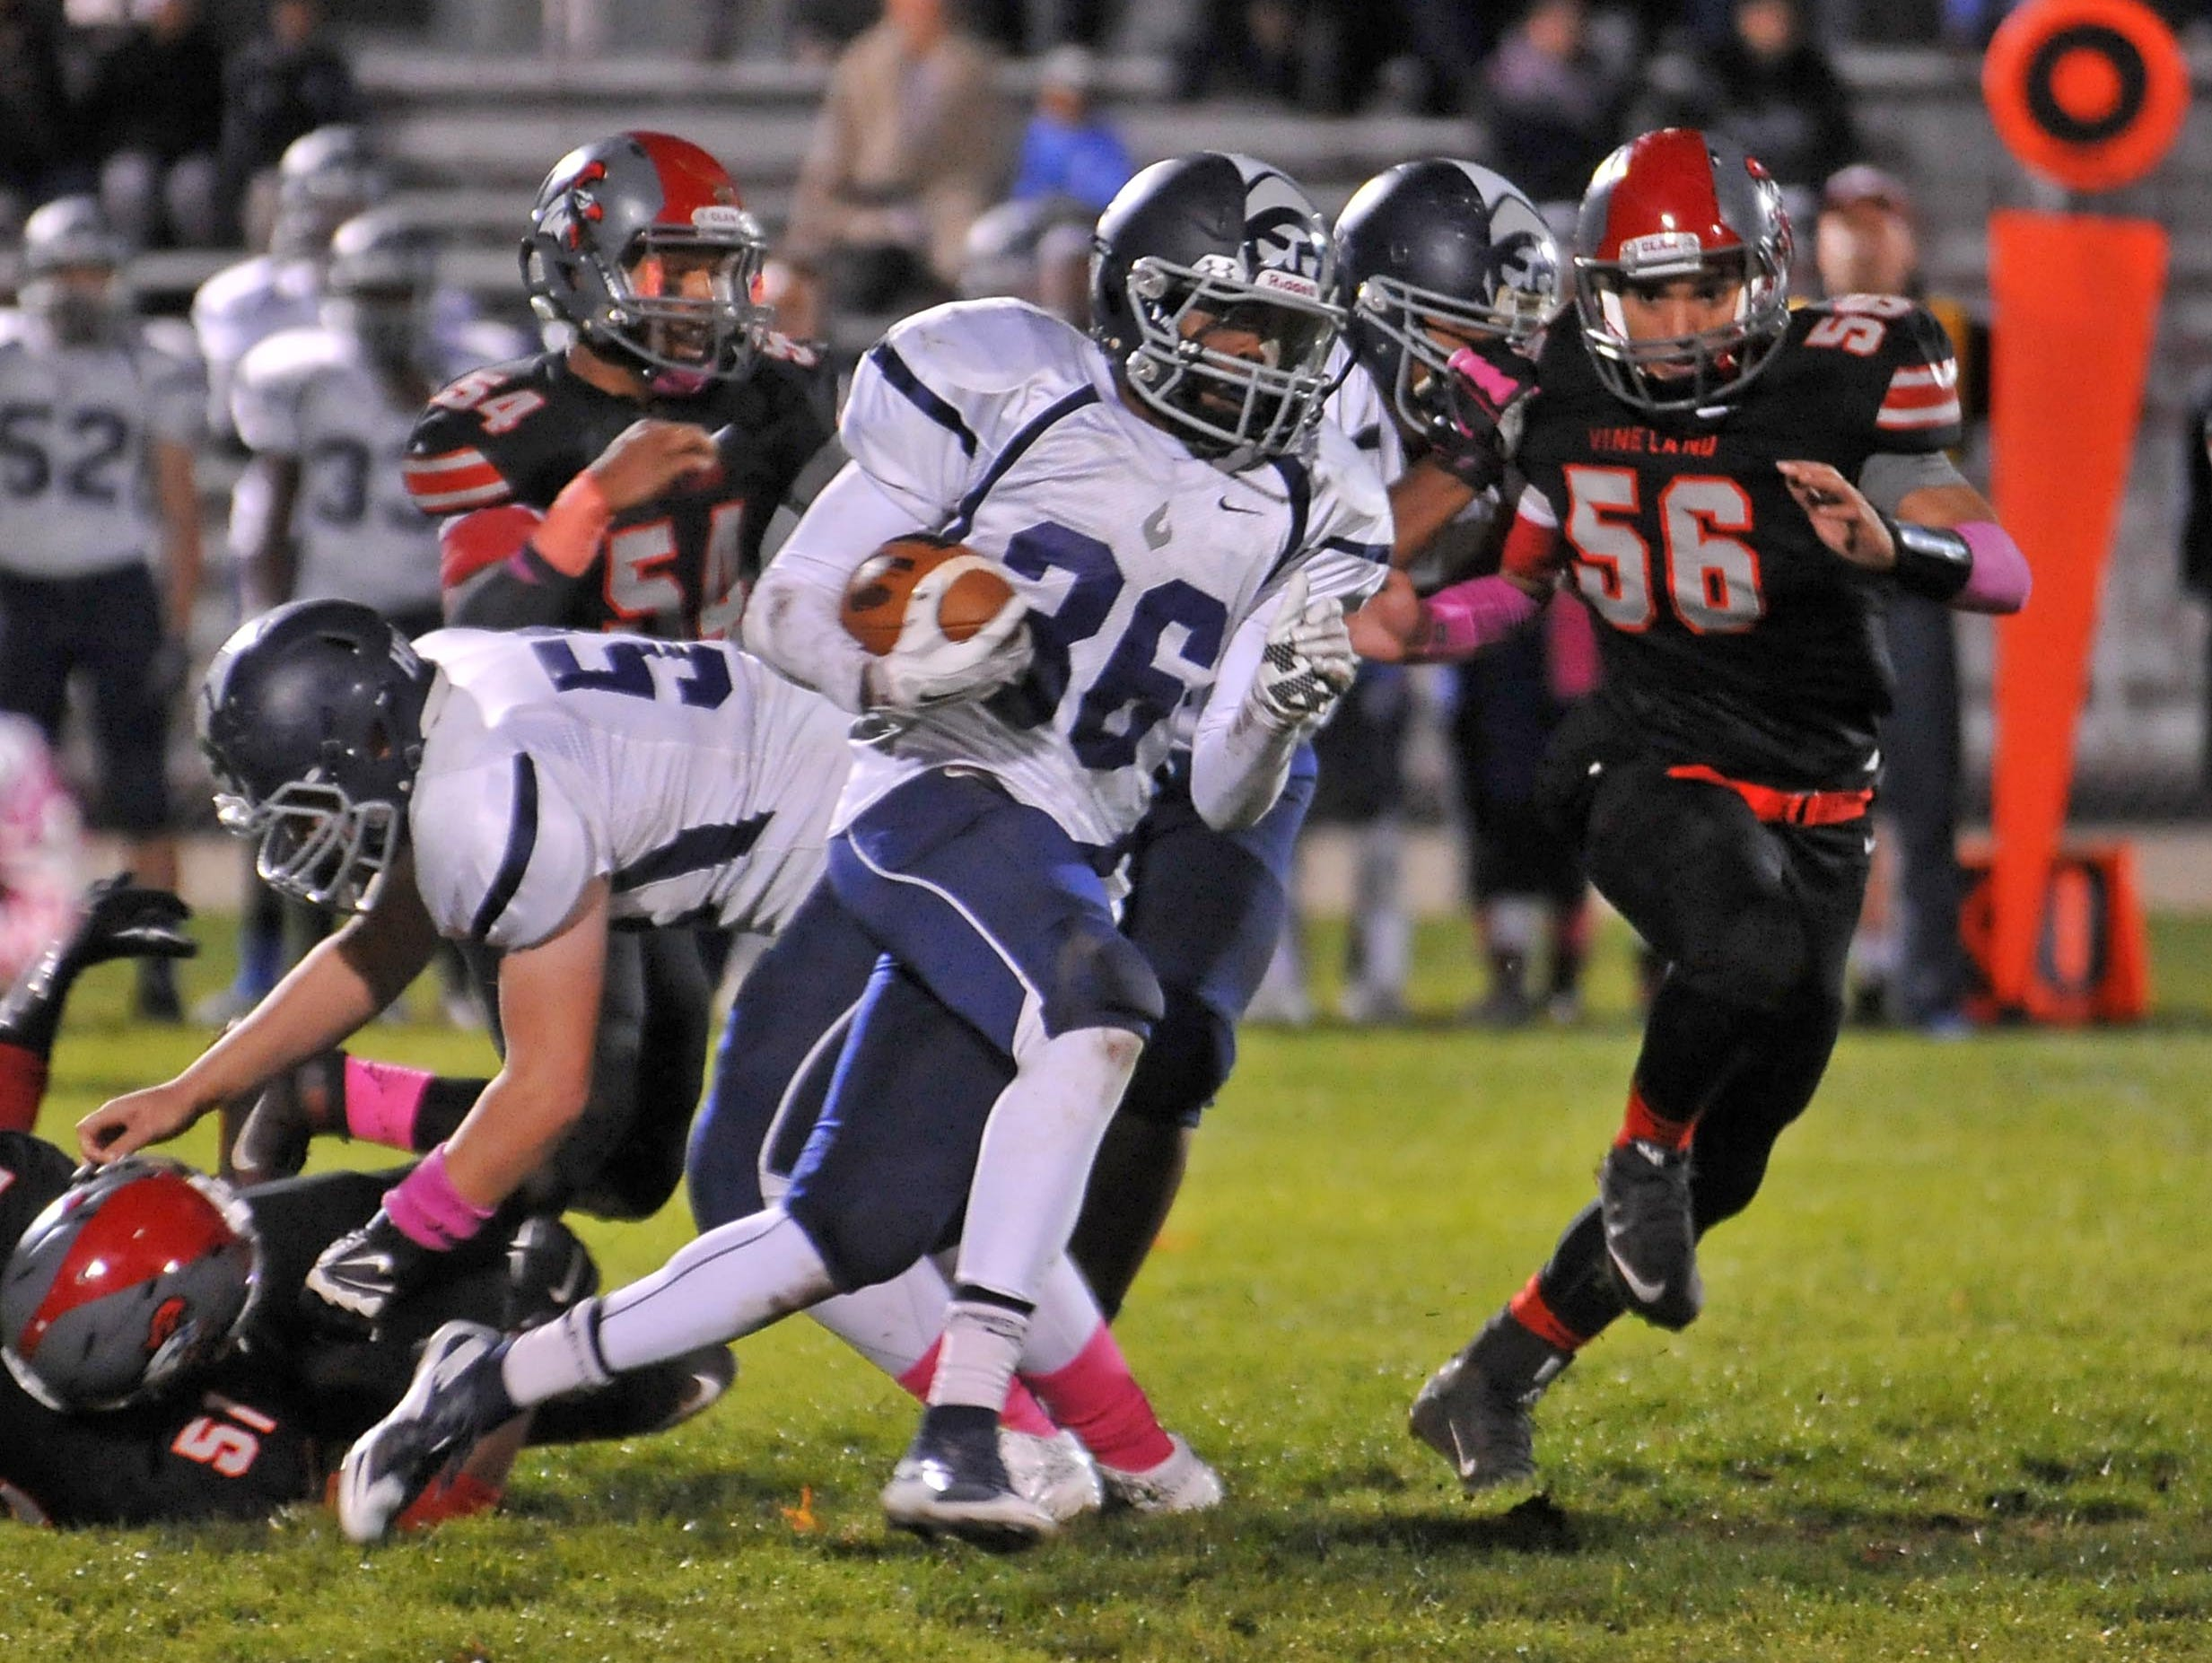 St. Augustine sophomore Kyle Dobbins has emerged as one of South Jersey's top running backs this season.